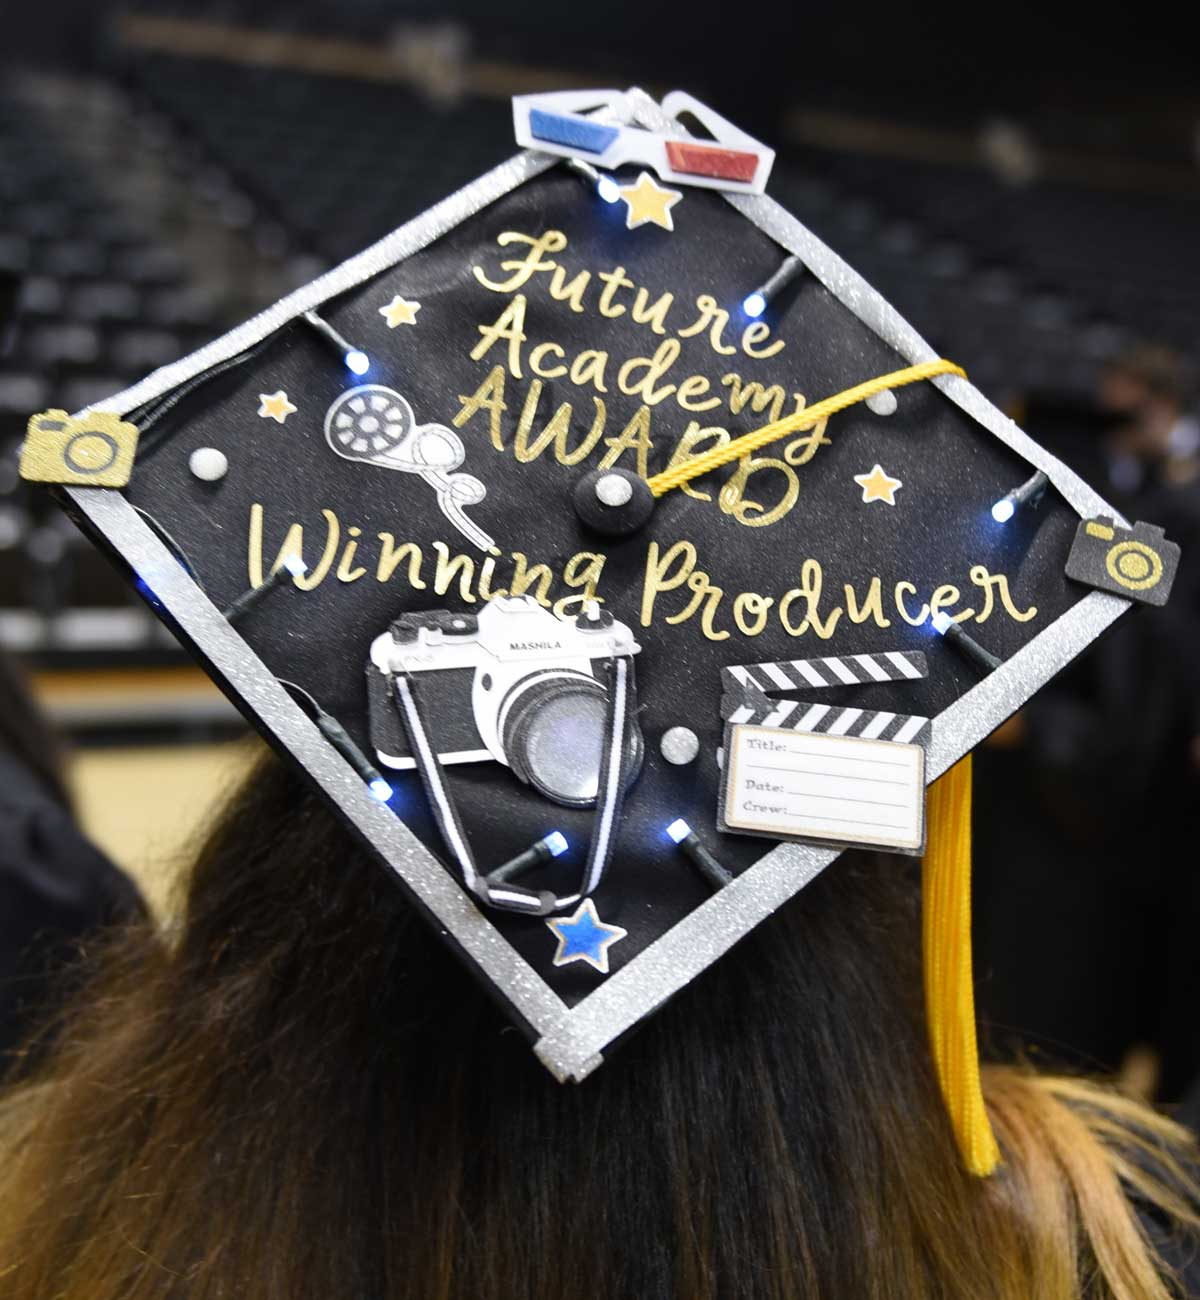 Grad cap decorated with text: Future Academy Award winning producer